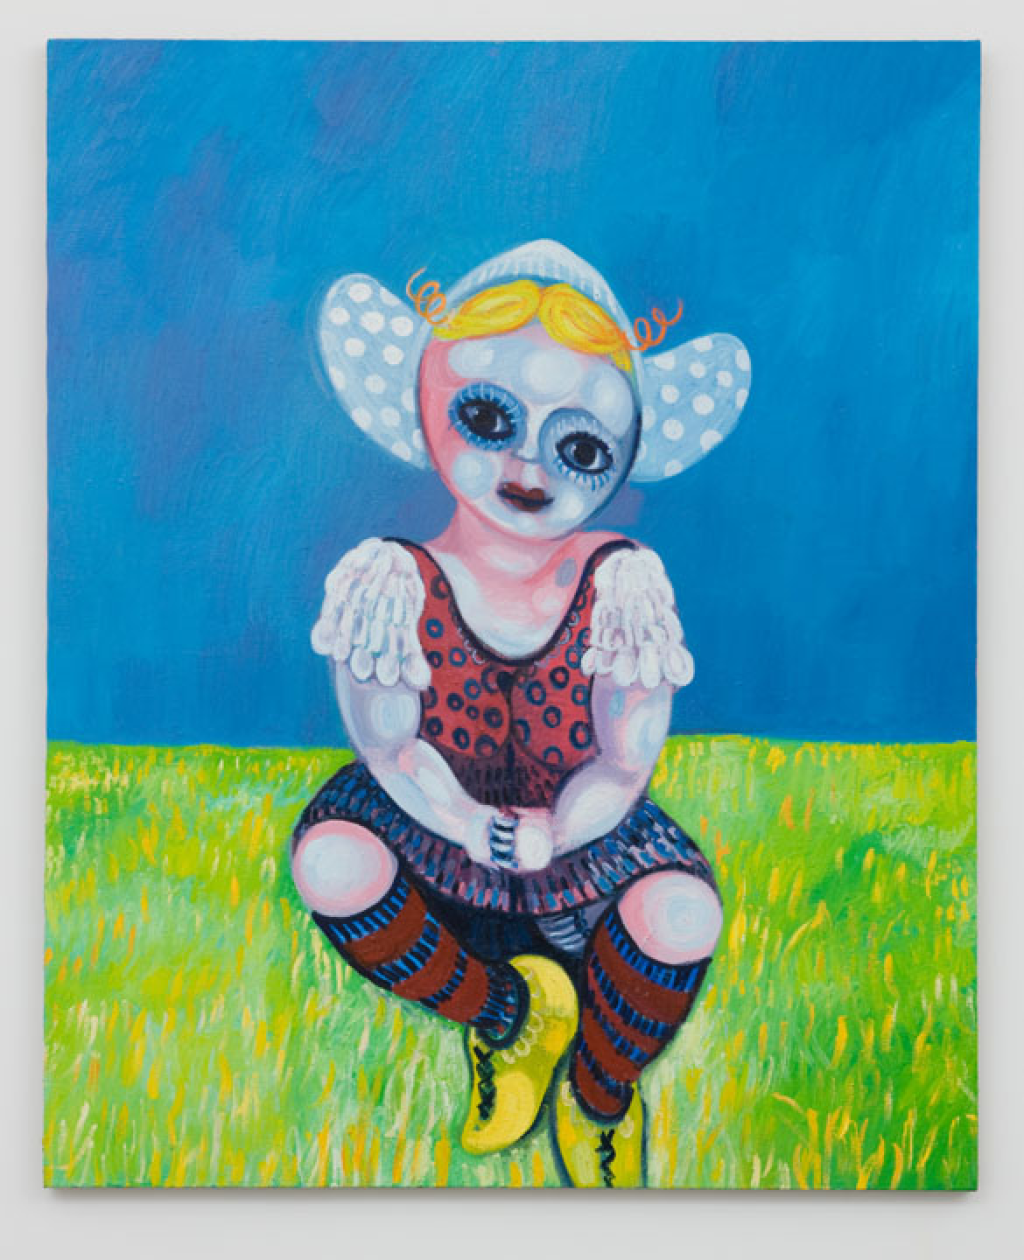 Dutch Girl 2008  Gerben Mulder